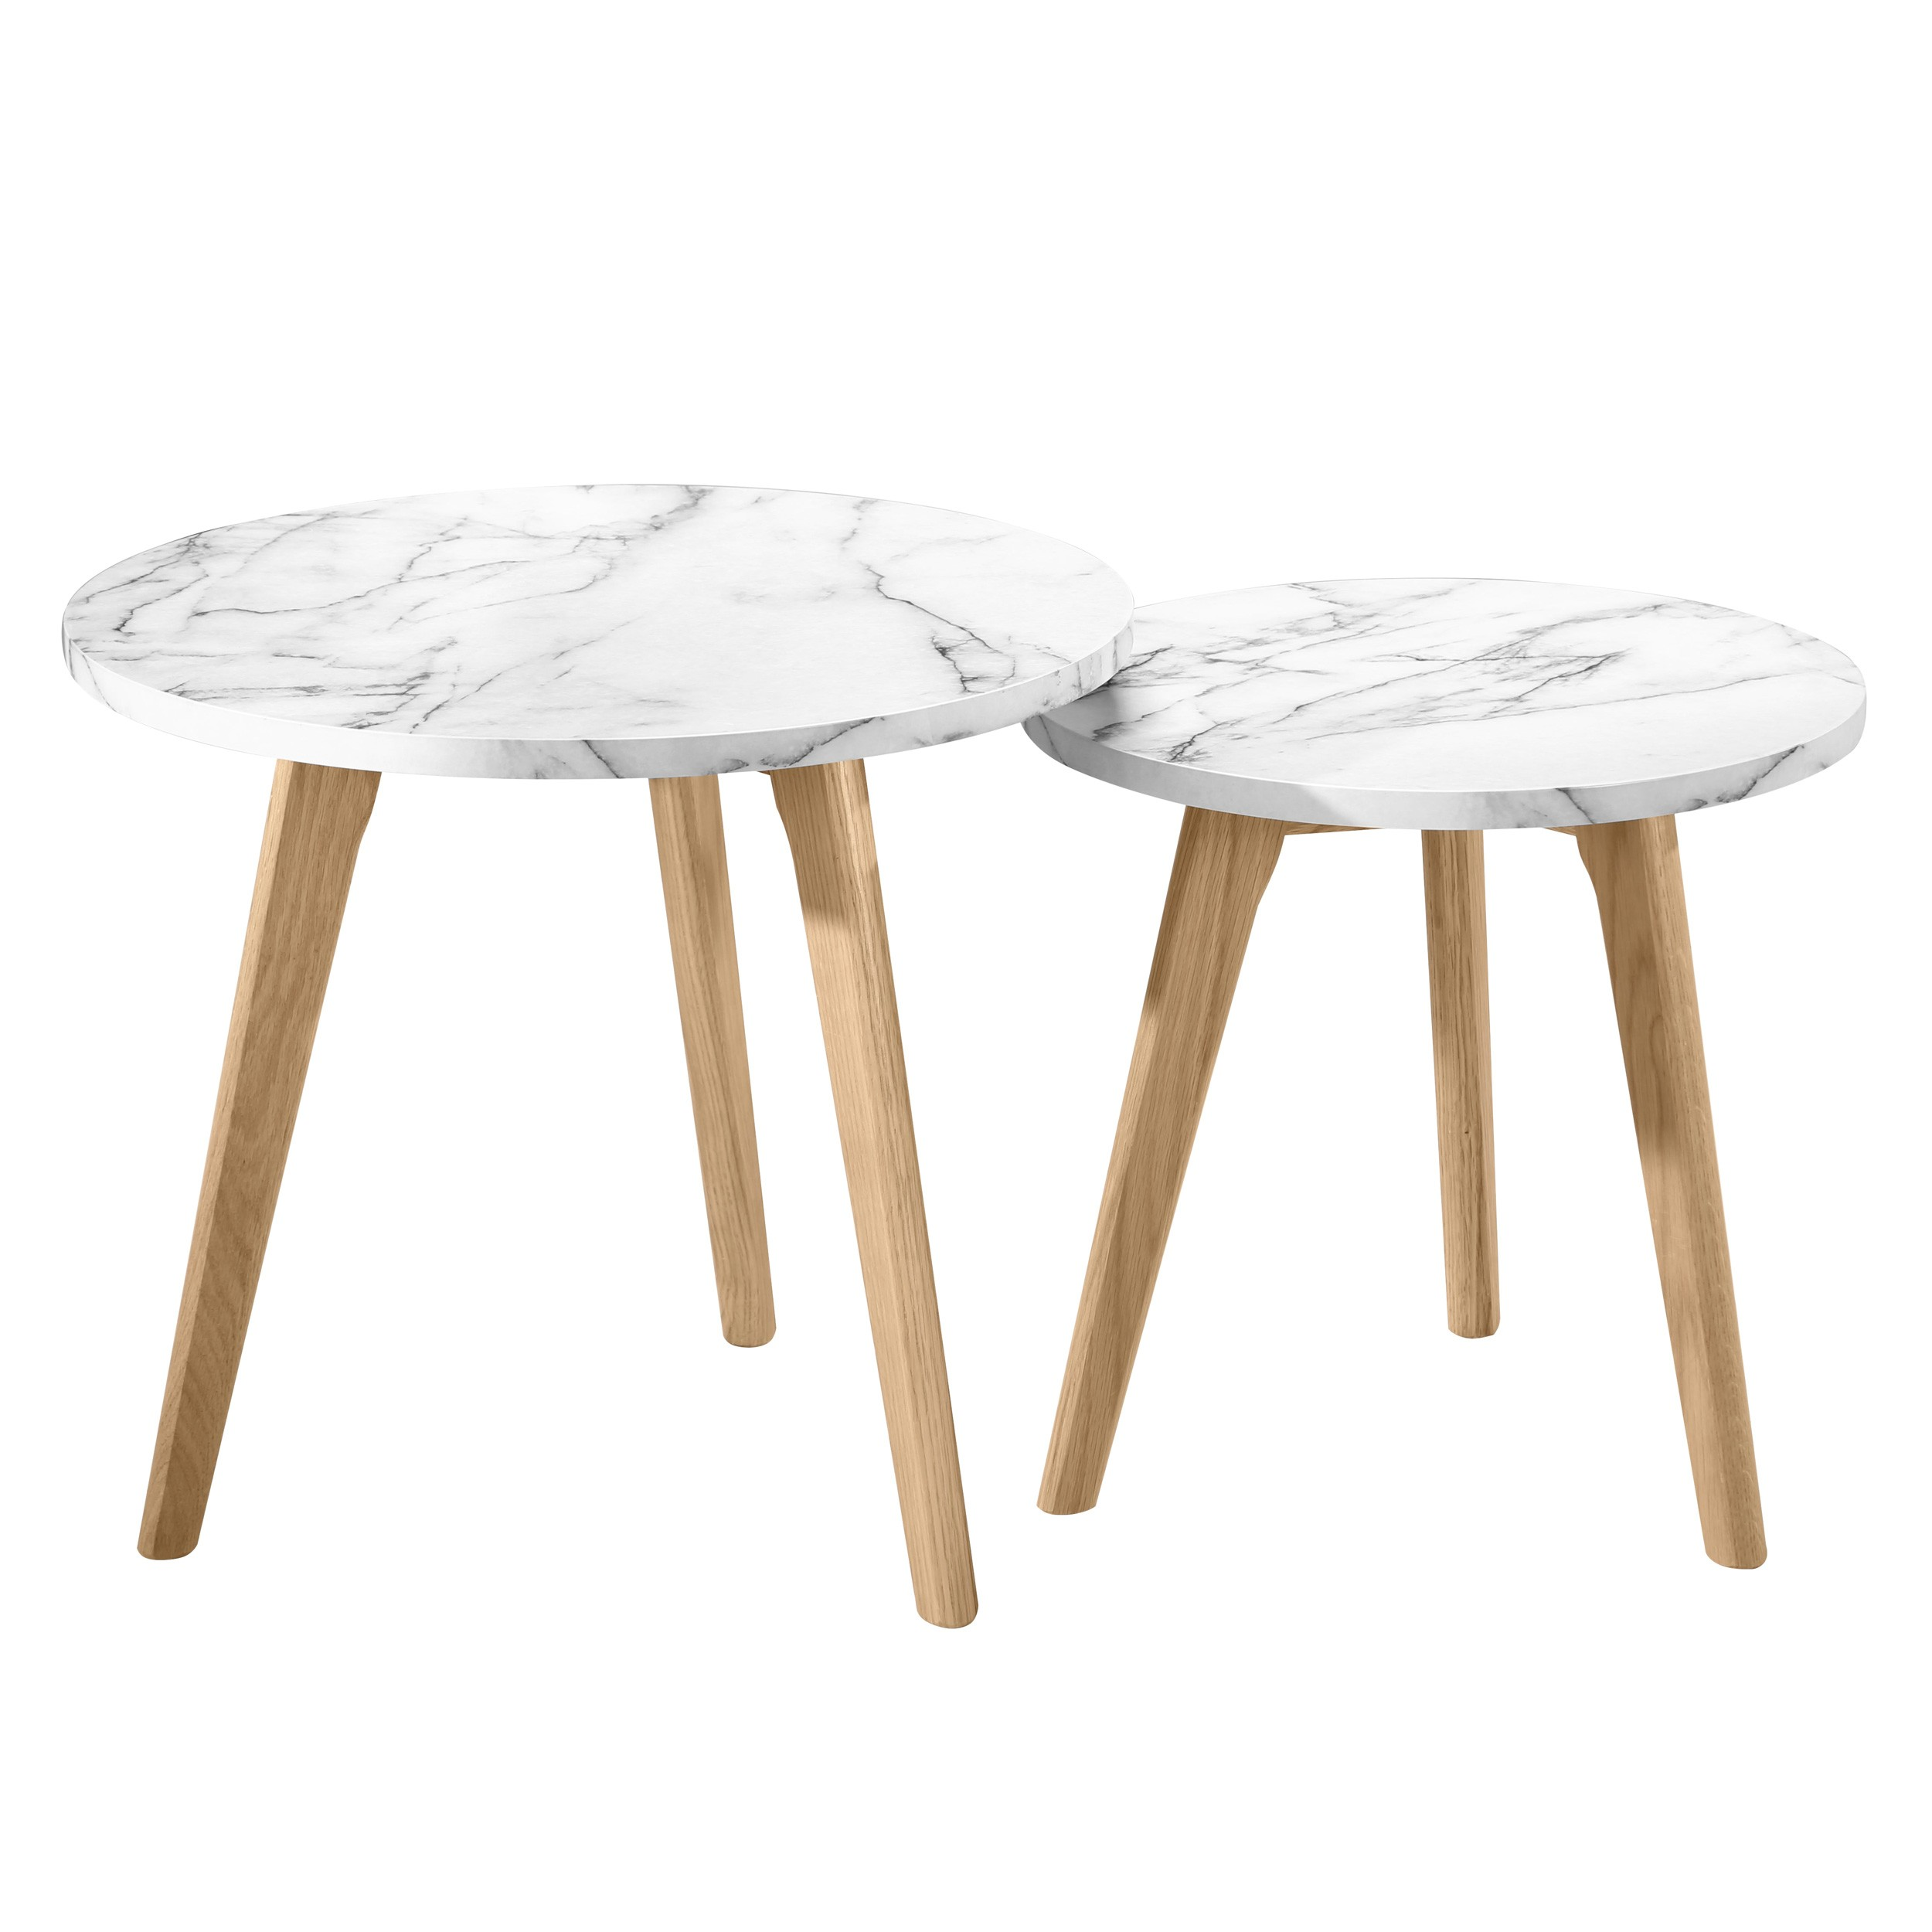 table basse ronde brenna lot de 2 commandez les tables basses rondes brenna lot de 2 rdv d co. Black Bedroom Furniture Sets. Home Design Ideas